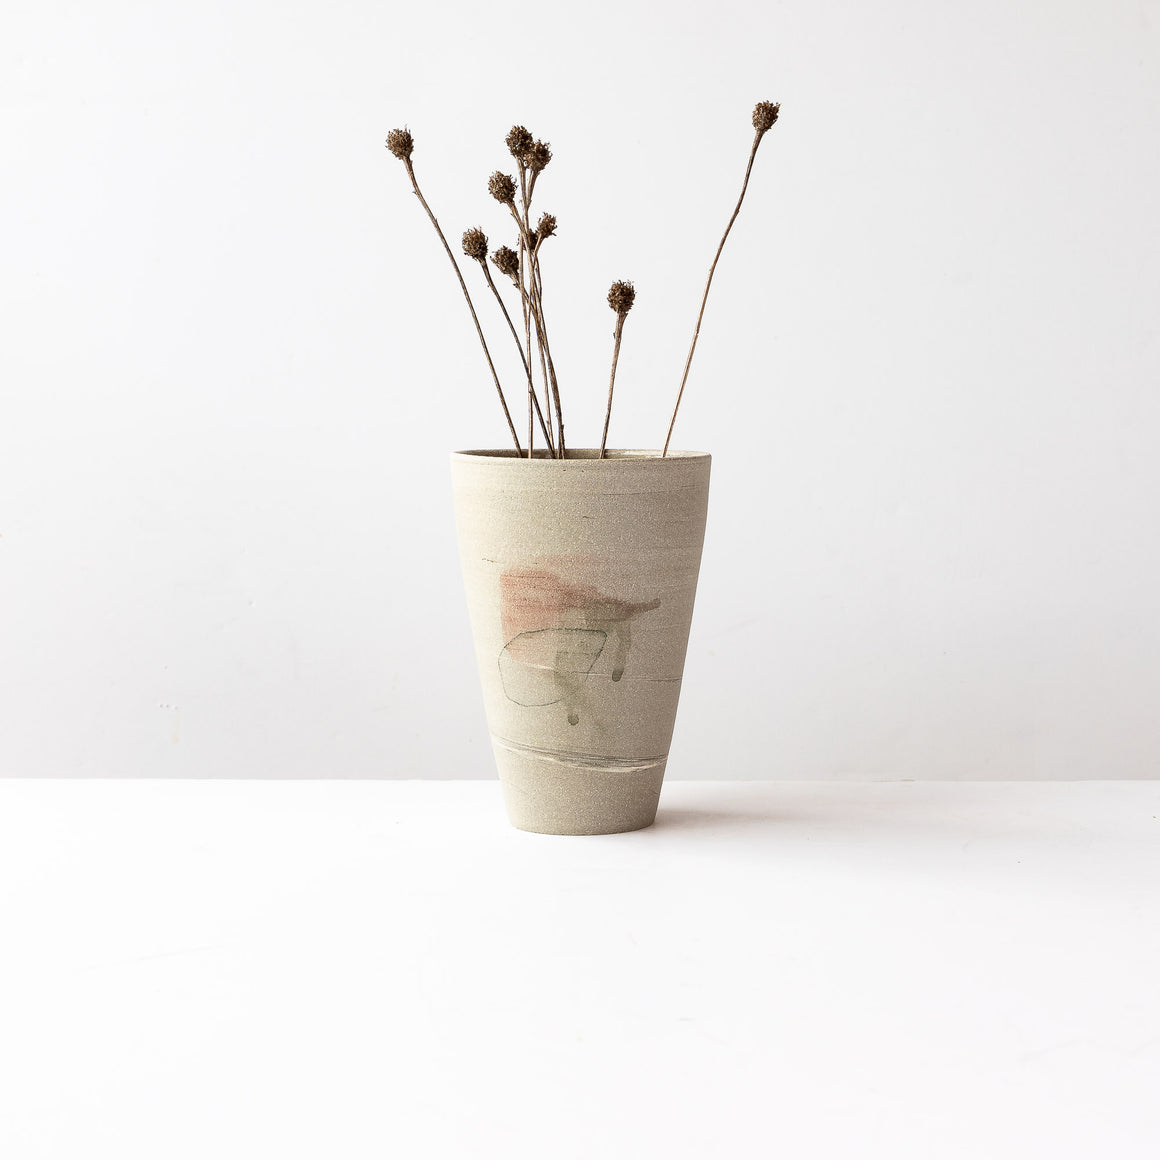 Hand Painted Stoneware Vase - Sold by Chic & Basta